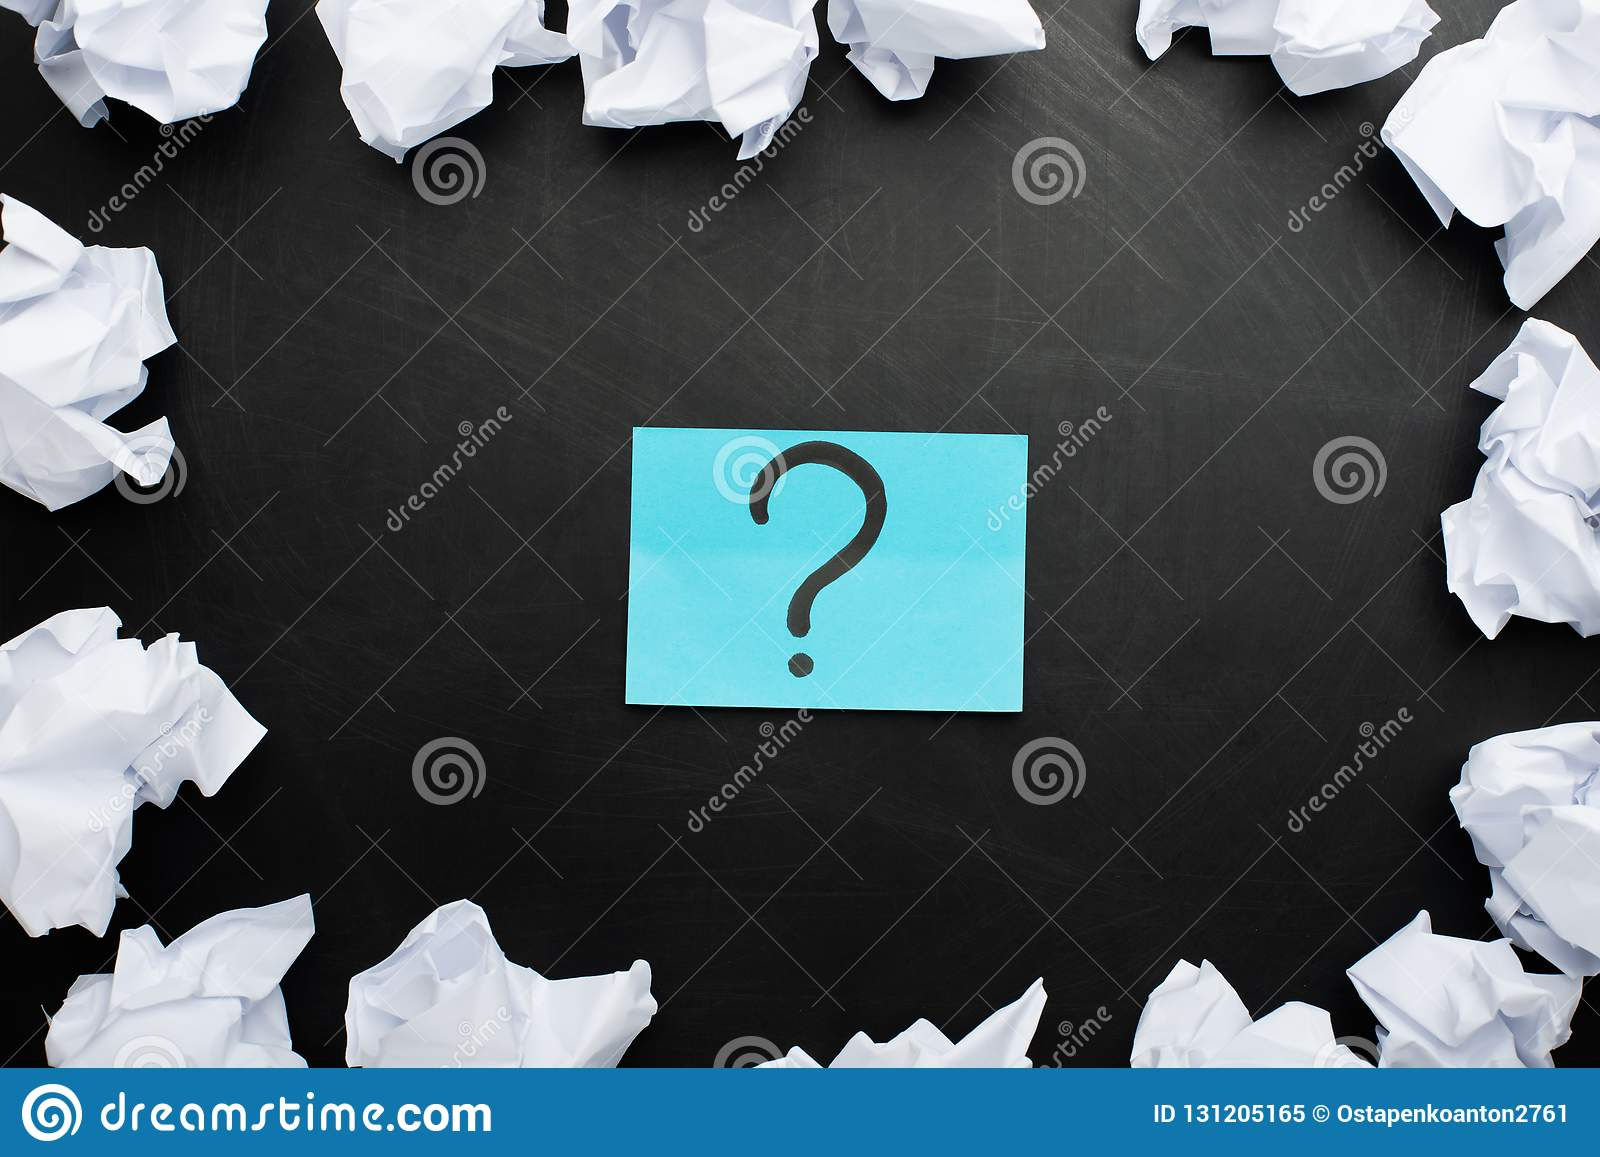 sticker with a question mark and around crumpled paper, concept ideas, torment to ideas